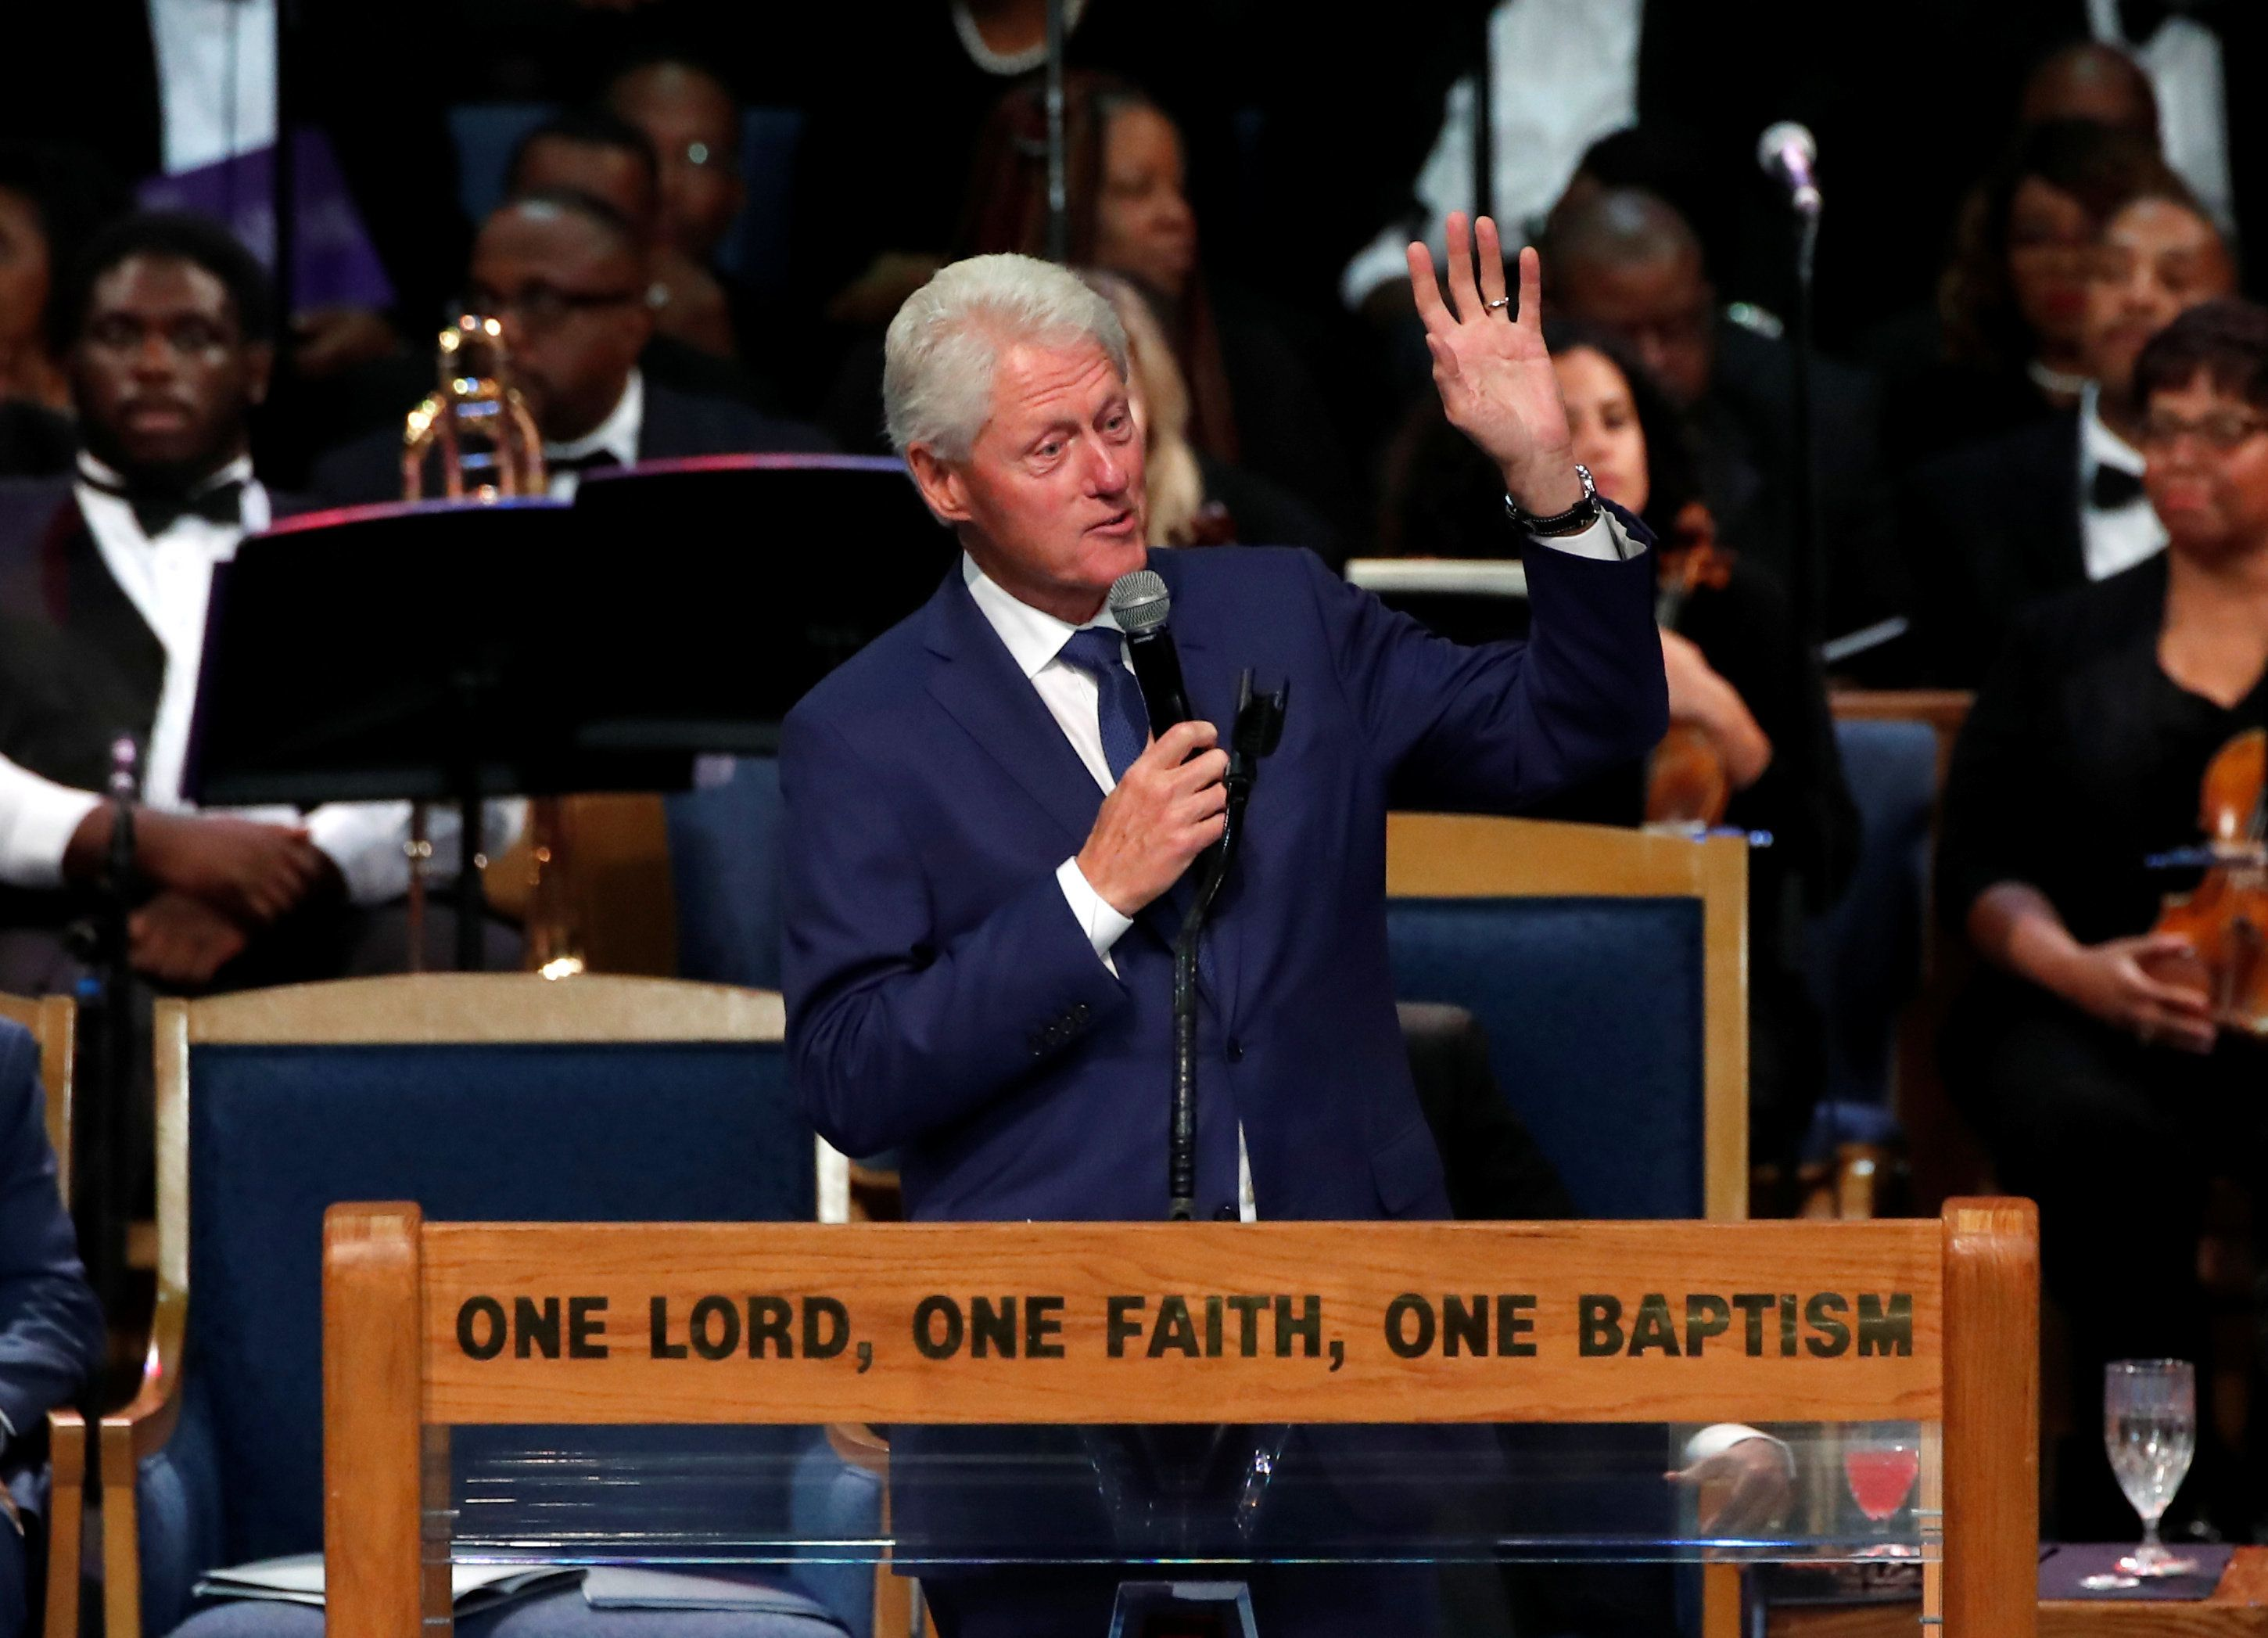 Former President Bill Clinton speaks at the funeral service for the late singer Aretha Franklin at the Greater Grace Temple